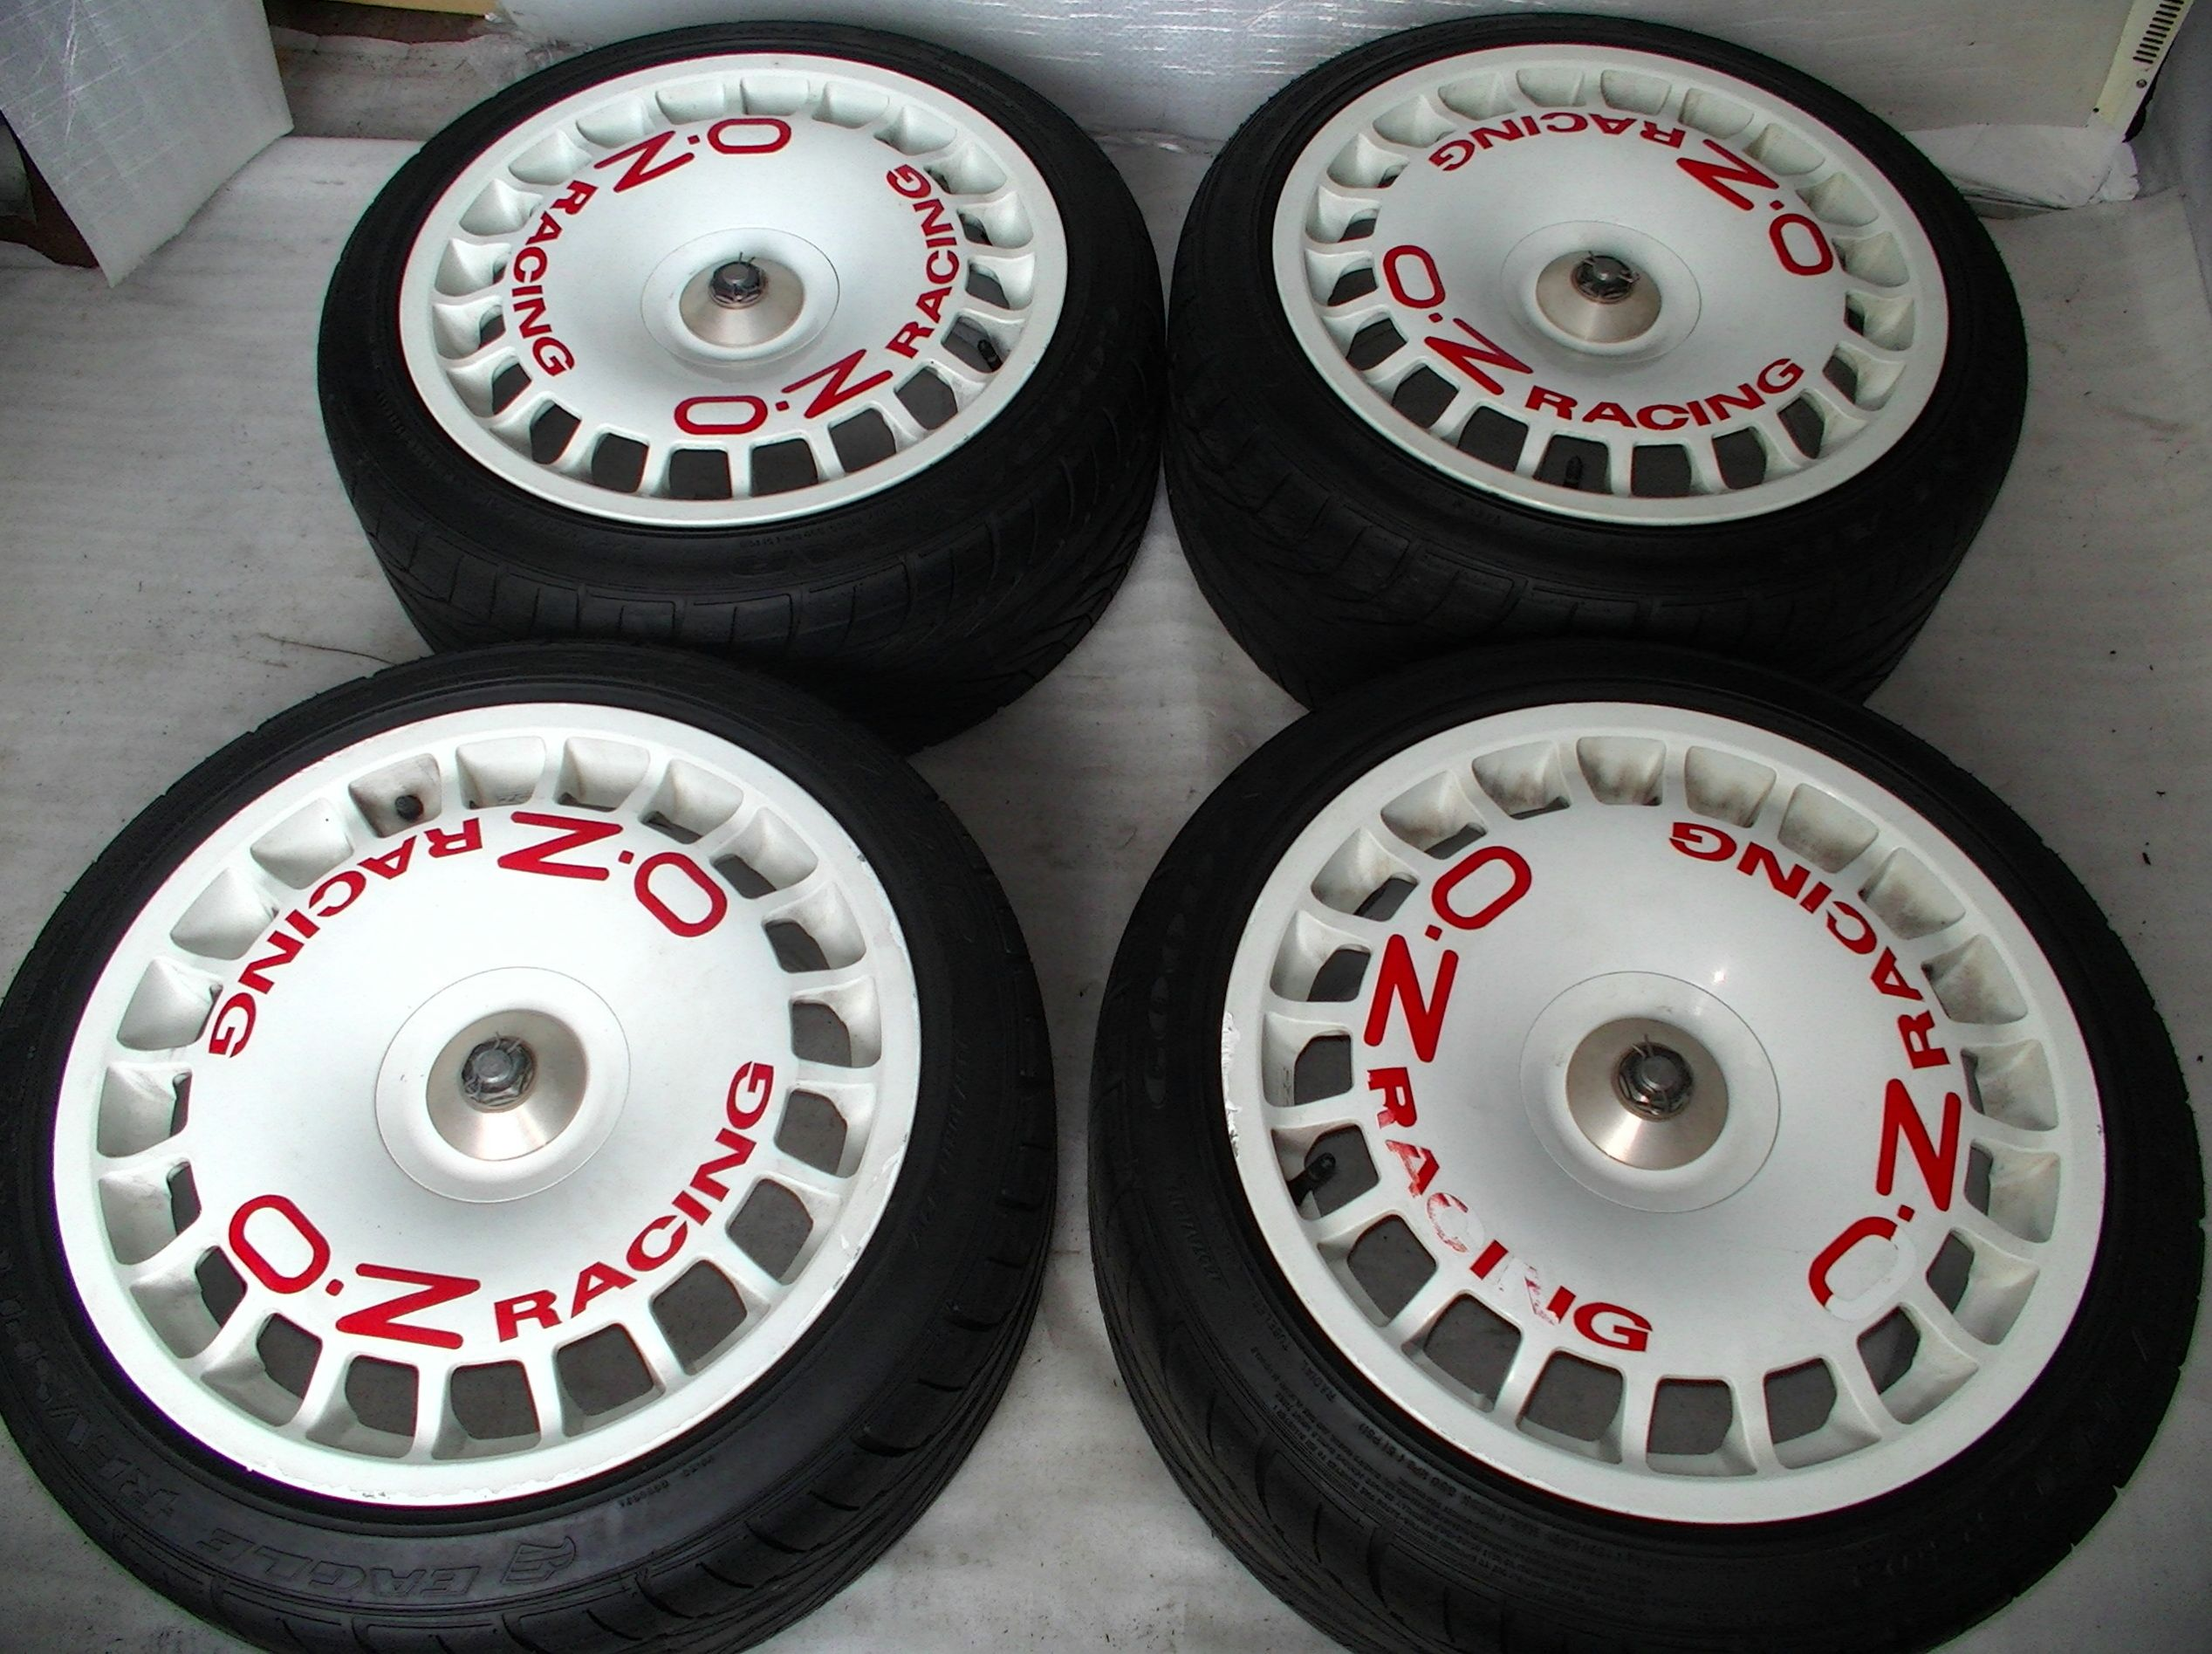 Oz Rallye Racing Racing Wheel Rims For Cars Racing Rims